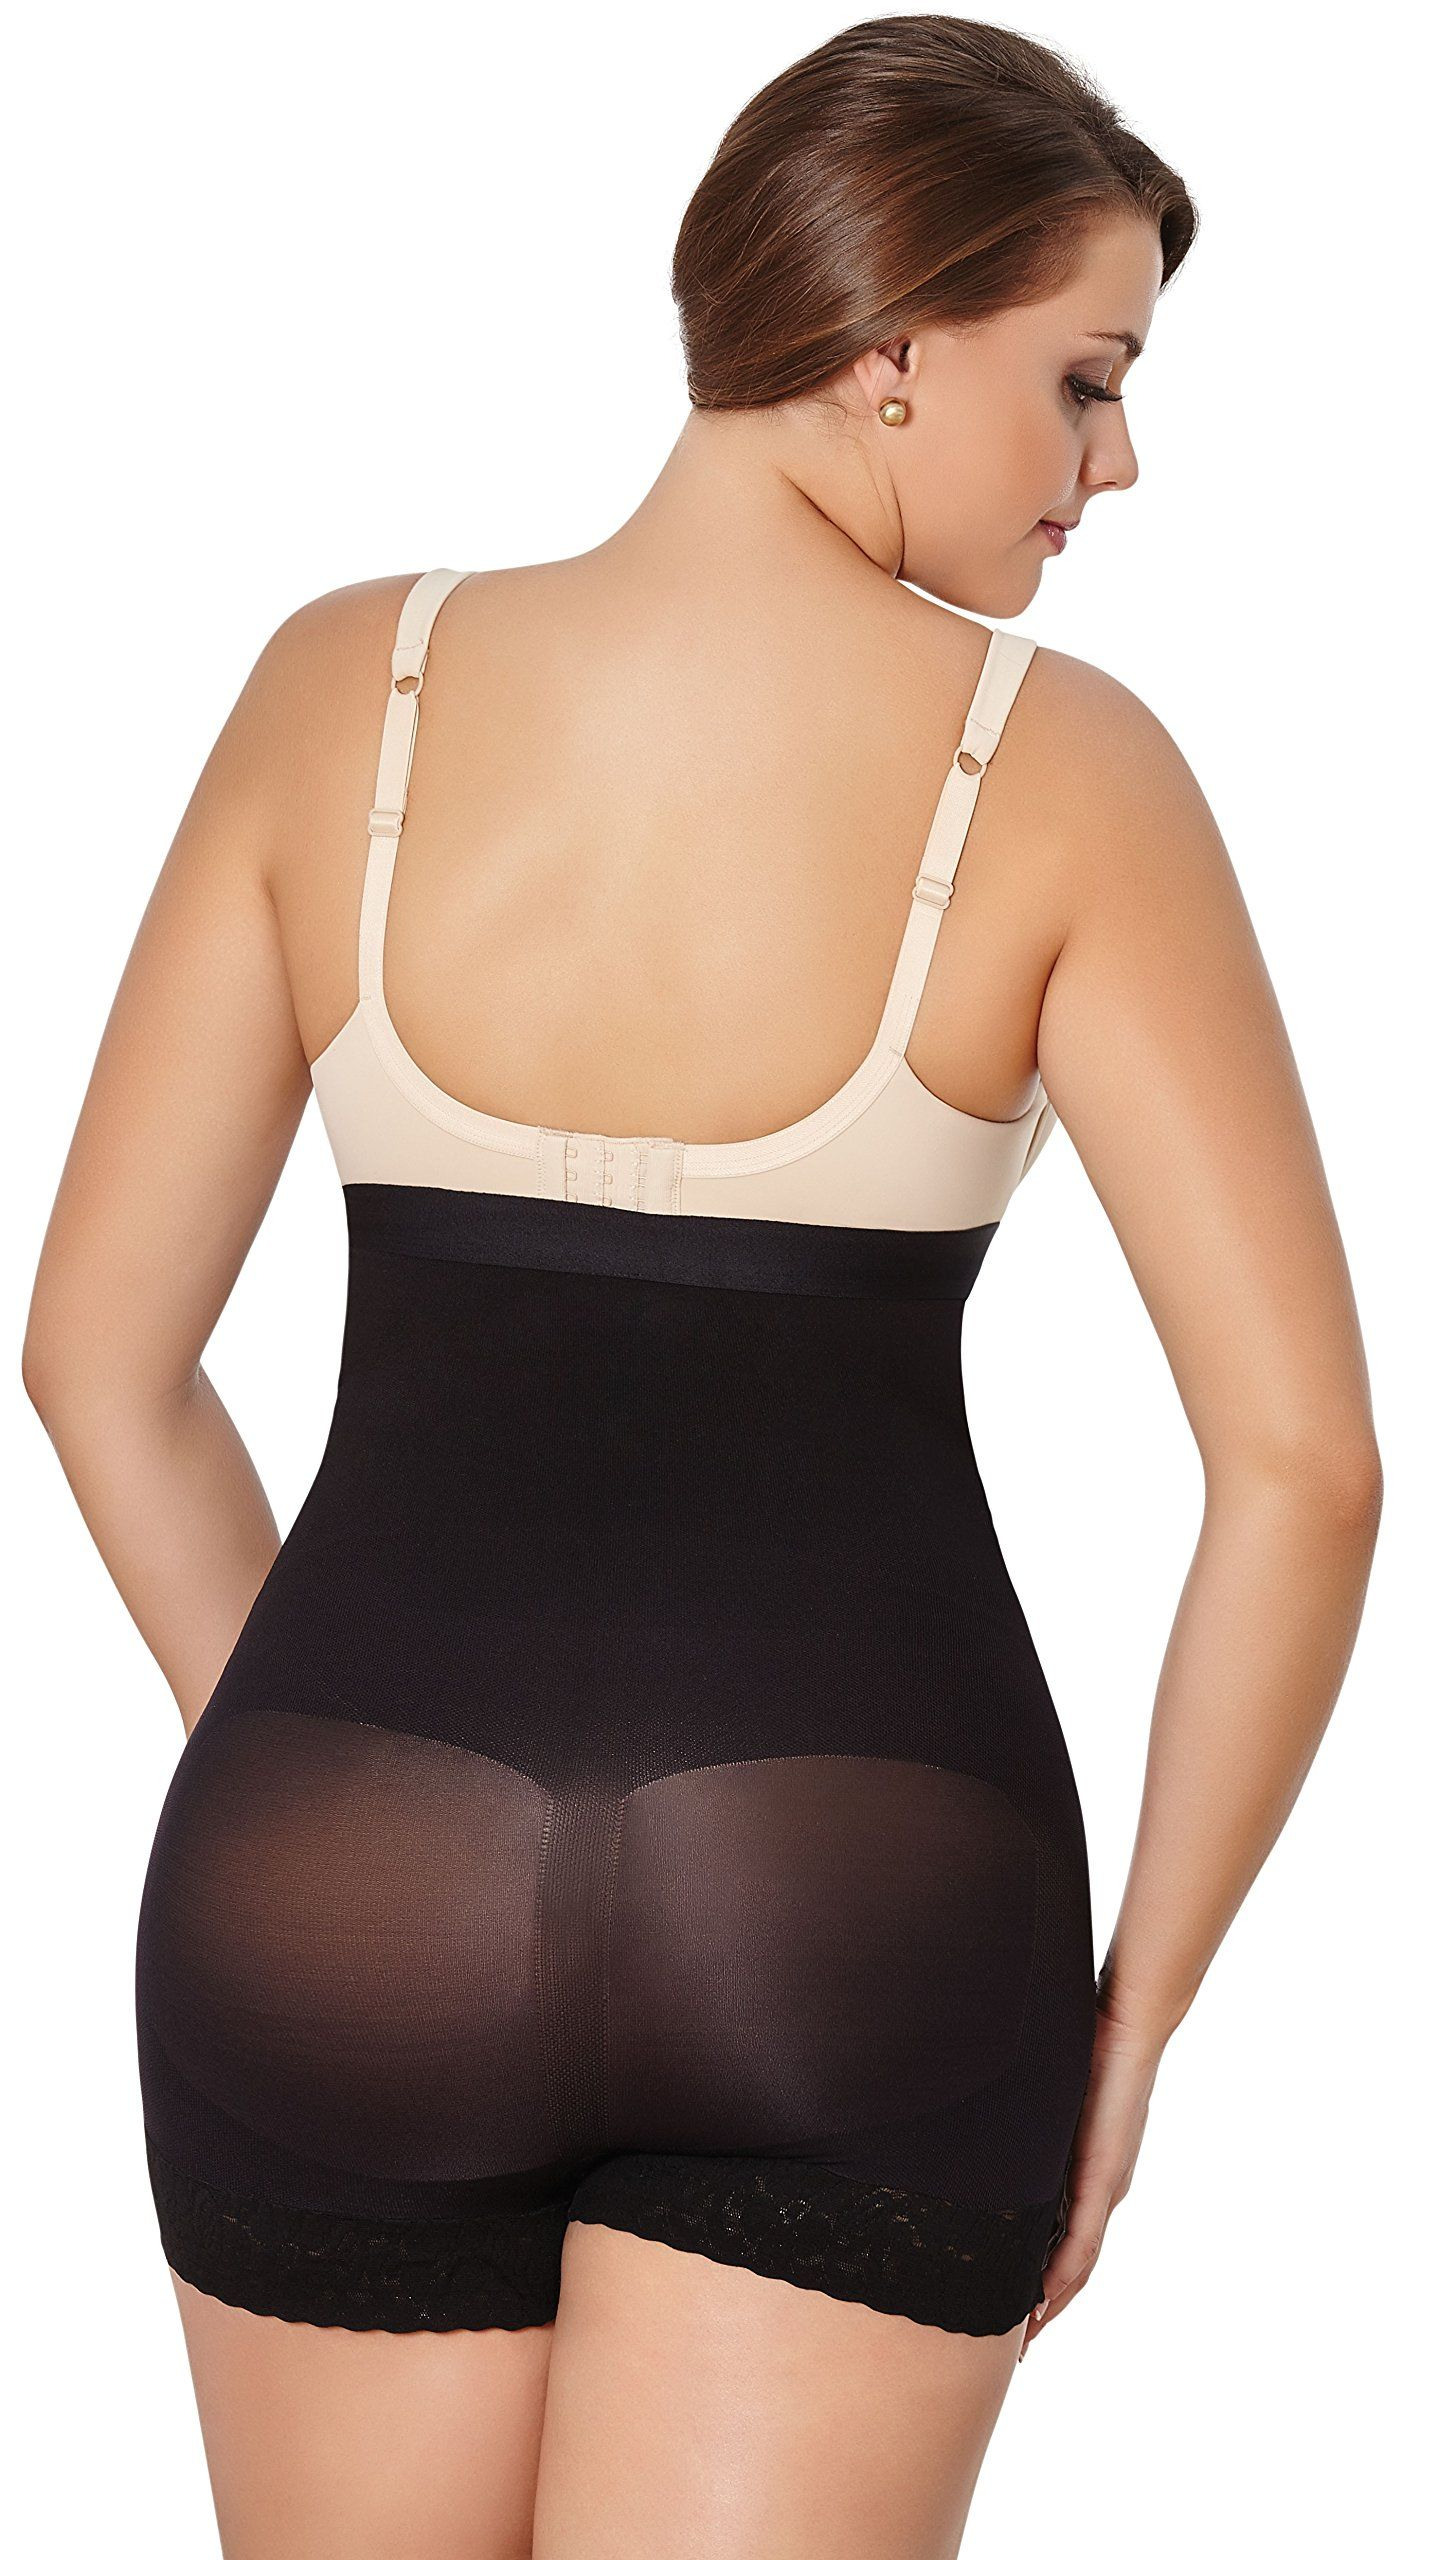 4cf33f7d4d7 Shapewear Women Plus Shaper Thermal High Panty Body Shaper Faja 3XLBlack     You can get more details by clicking on the image. (Note Amazon affiliate  link)